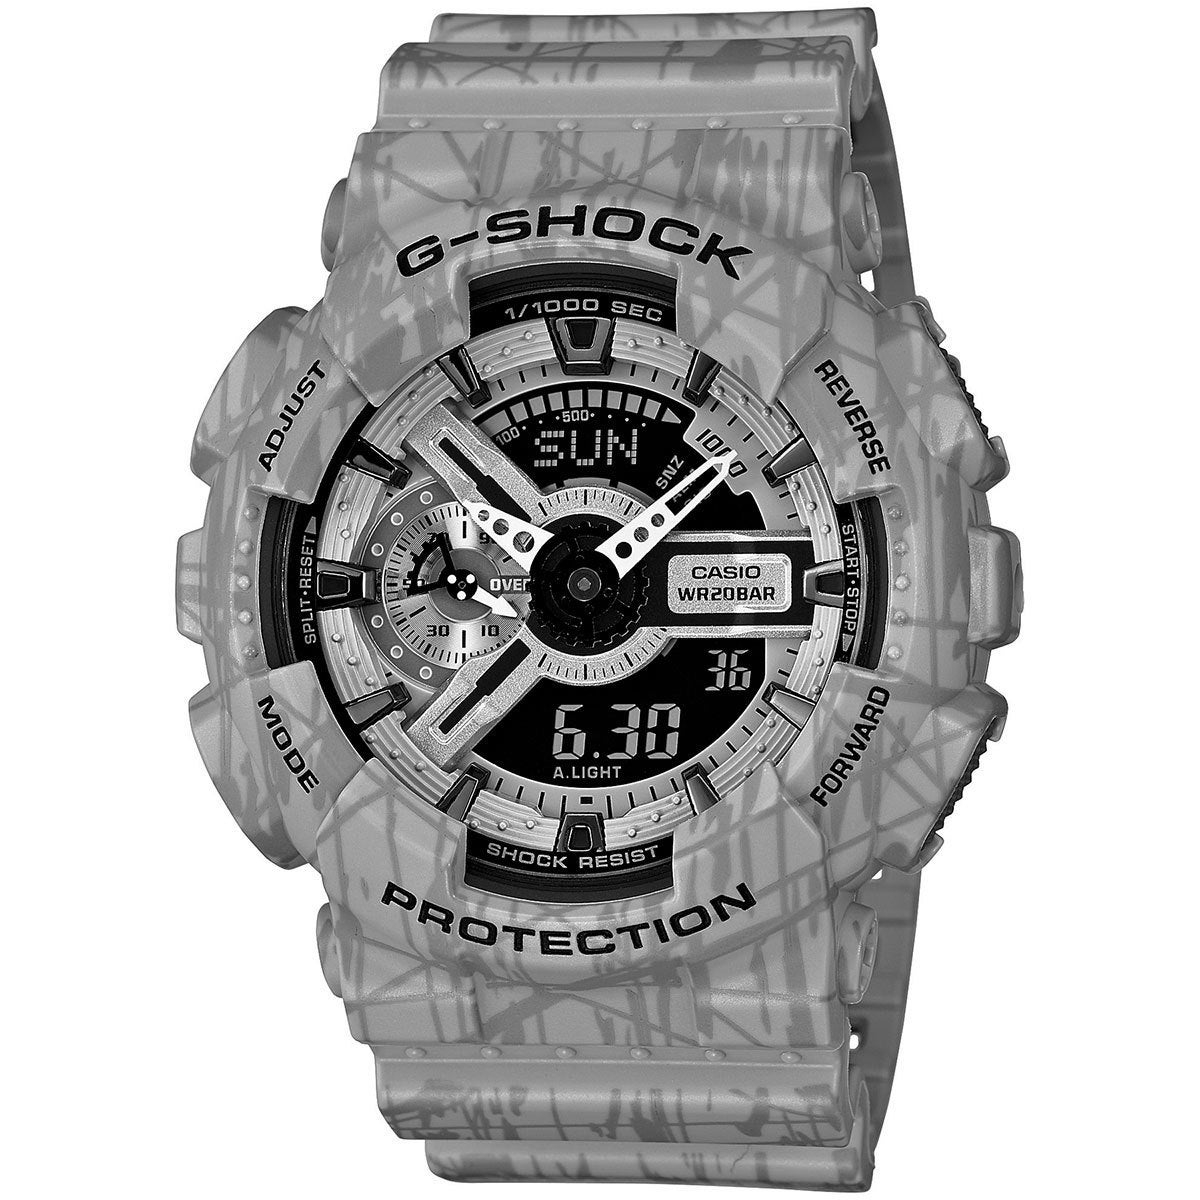 cdb2fbd2c Shop Casio G-Shock Men's Analog-Digital Dial Patterned Grey Resin Watch - Free  Shipping Today - Overstock - 10991335